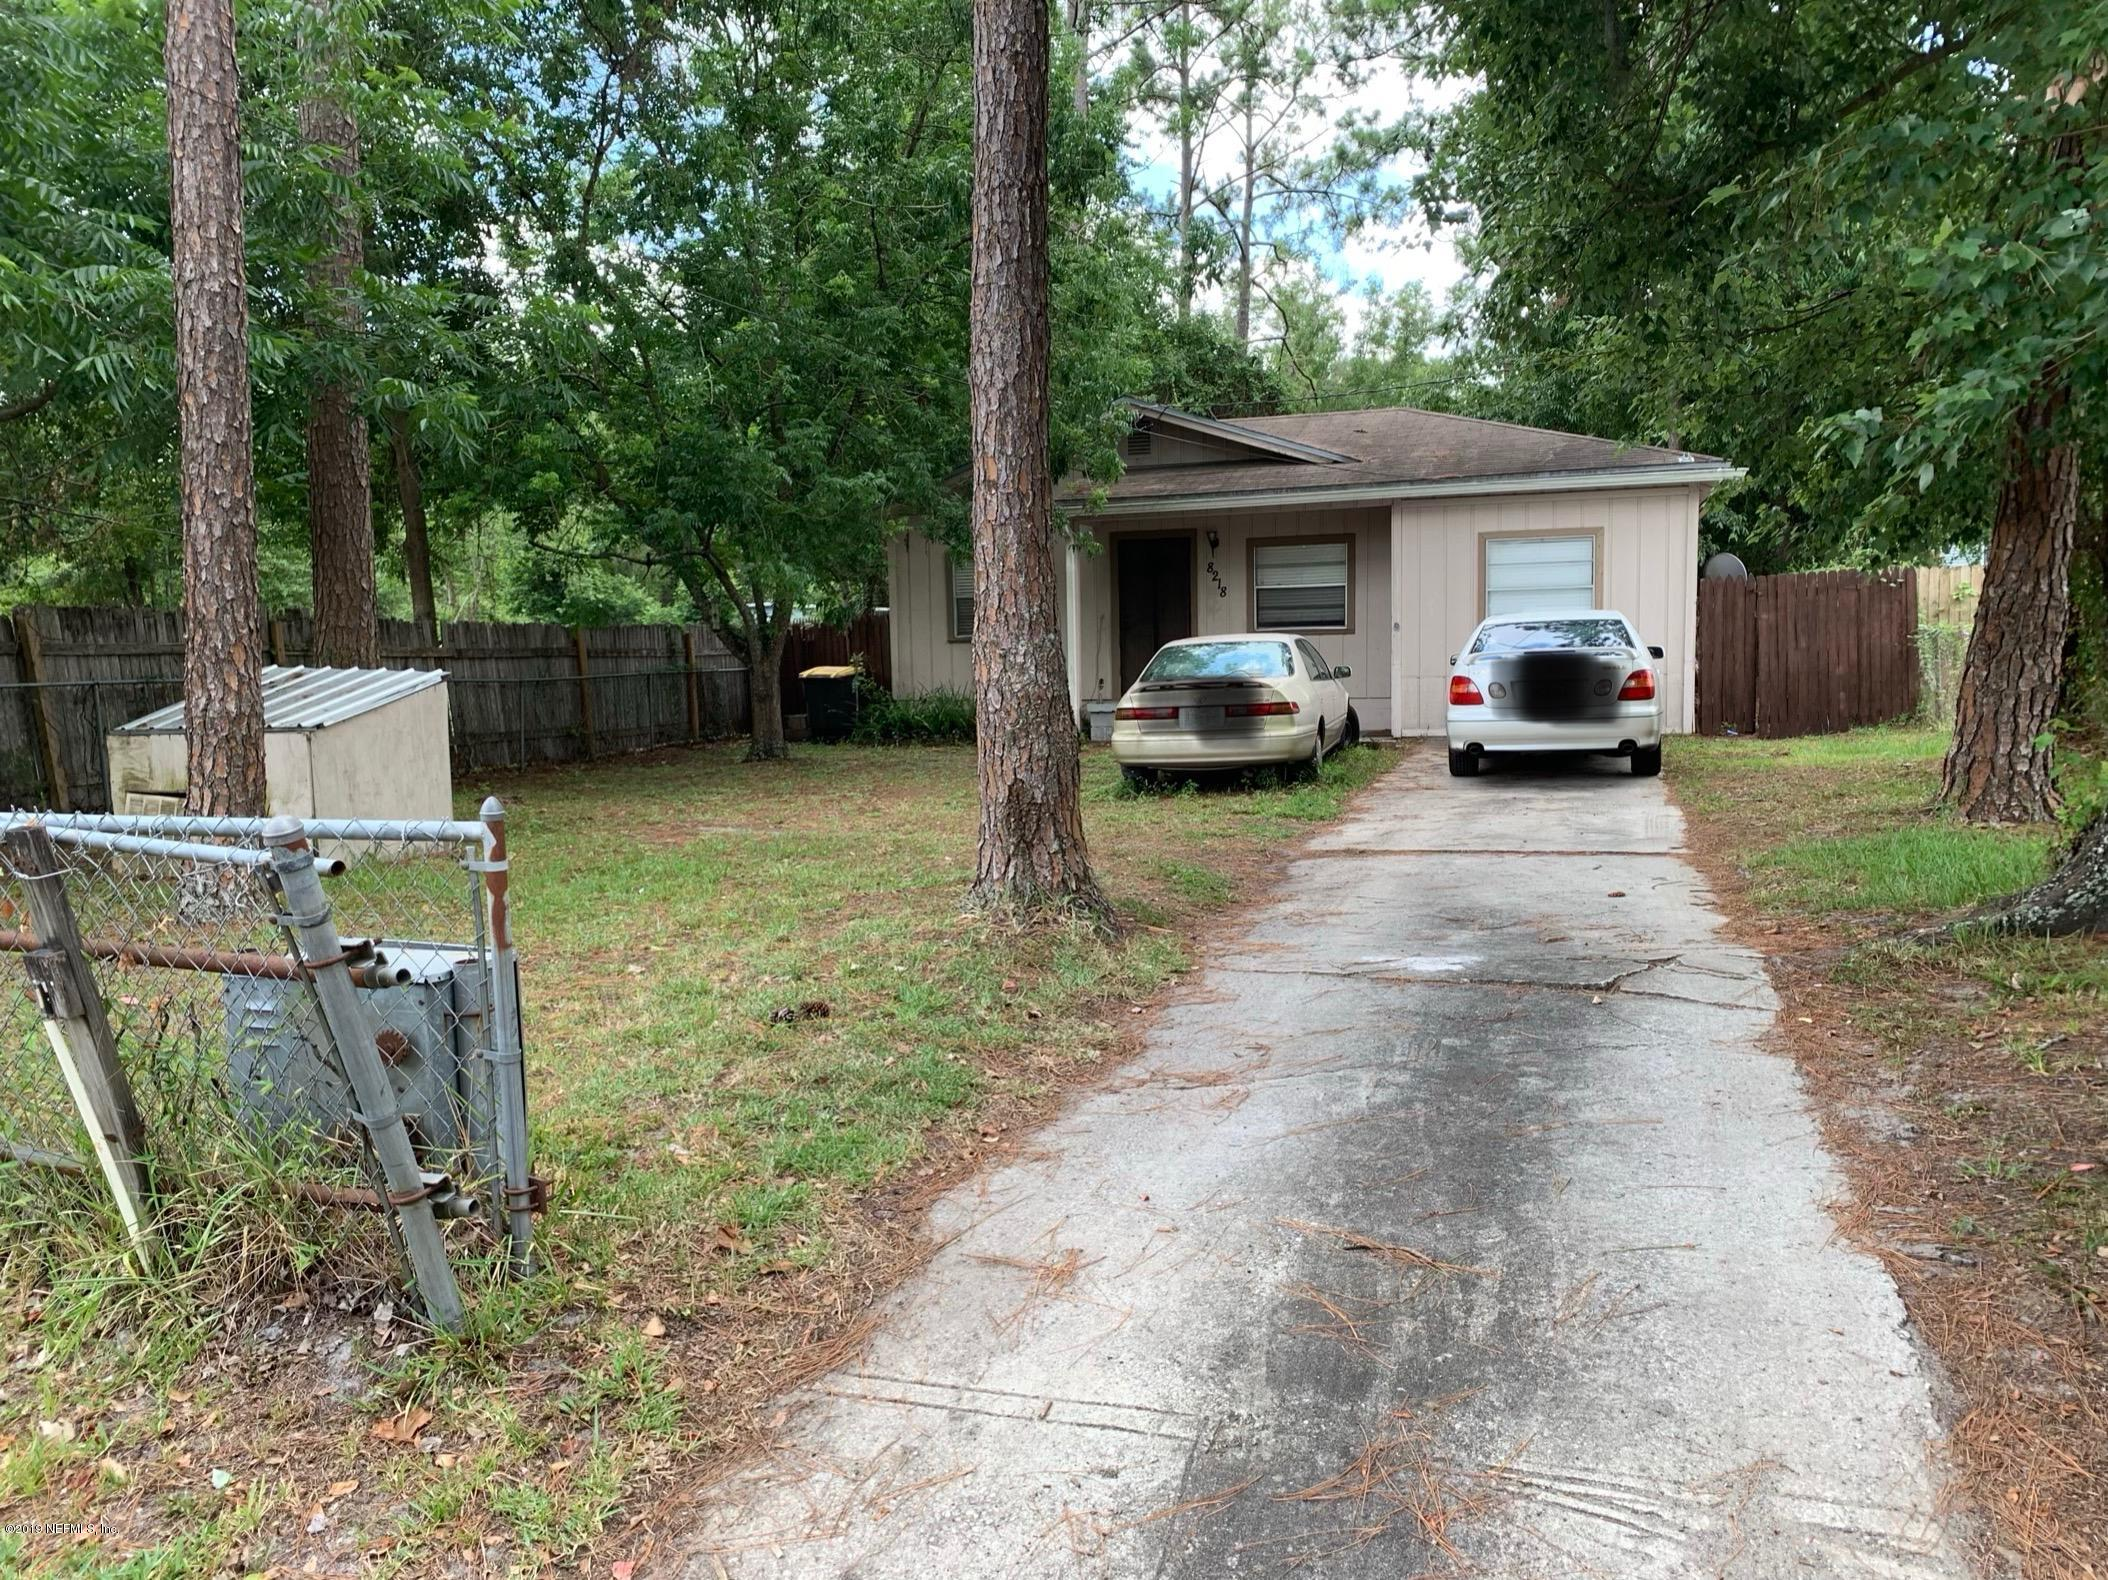 Photo of 8218 NOROAD, JACKSONVILLE, FL 32210